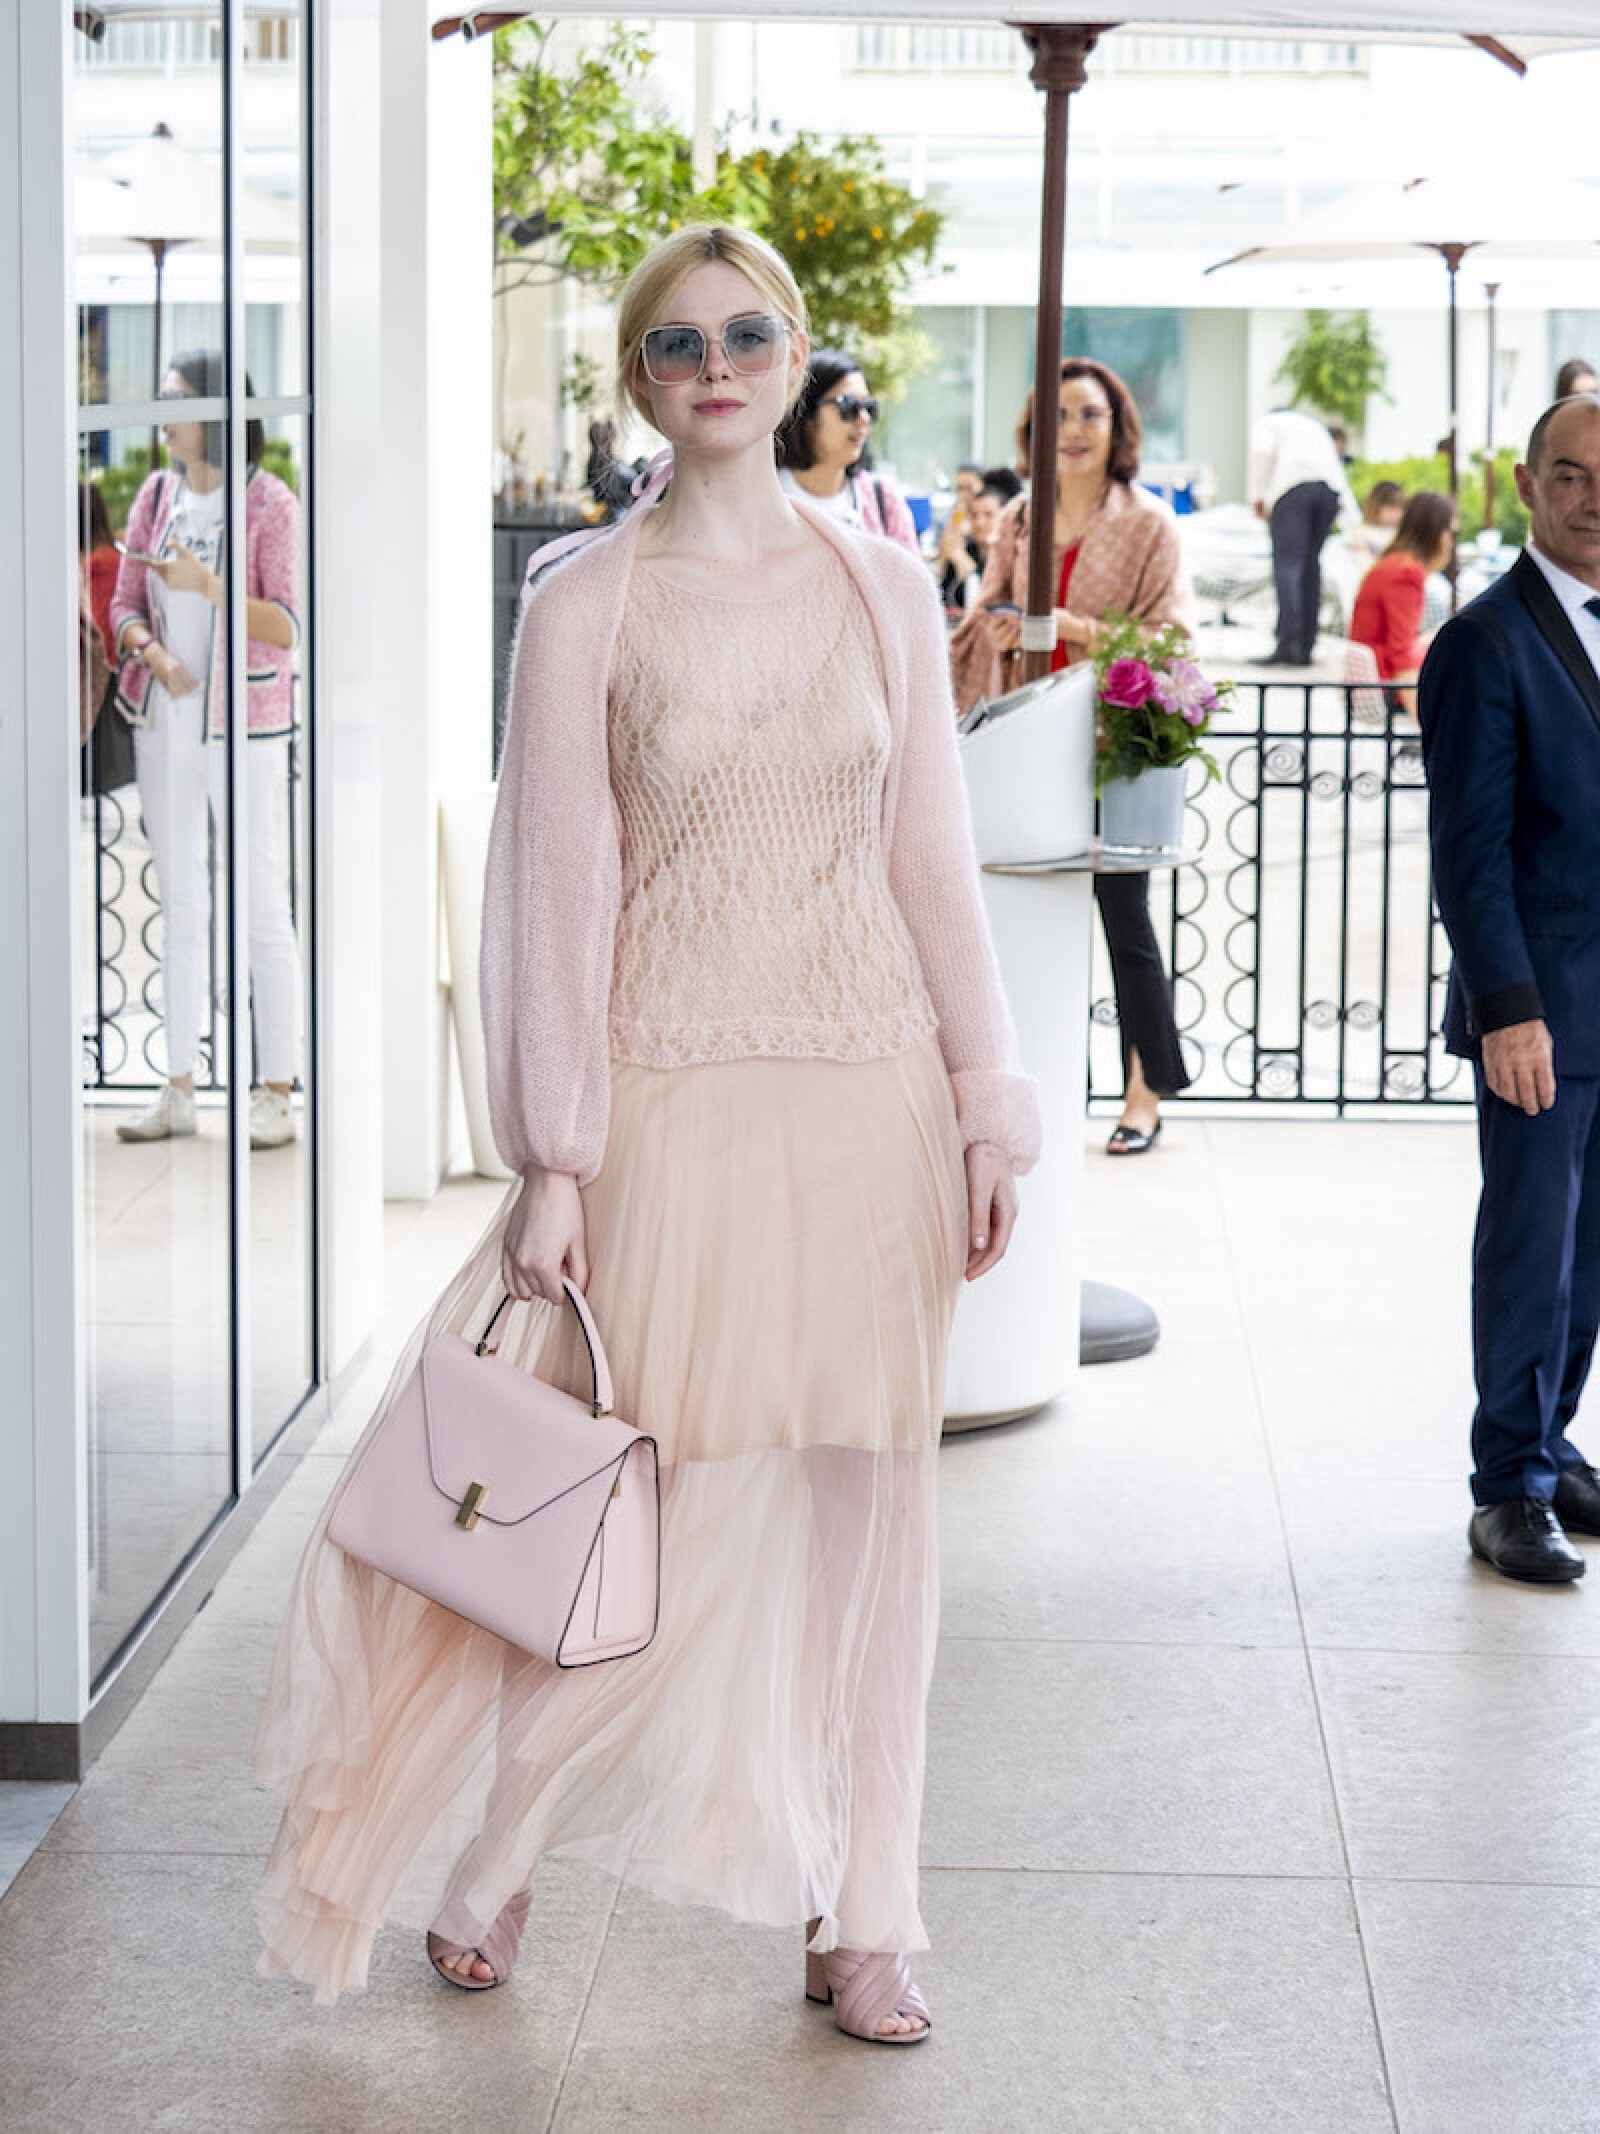 Celebrity Sightings At The 72nd Annual Cannes Film Festival - Day 10